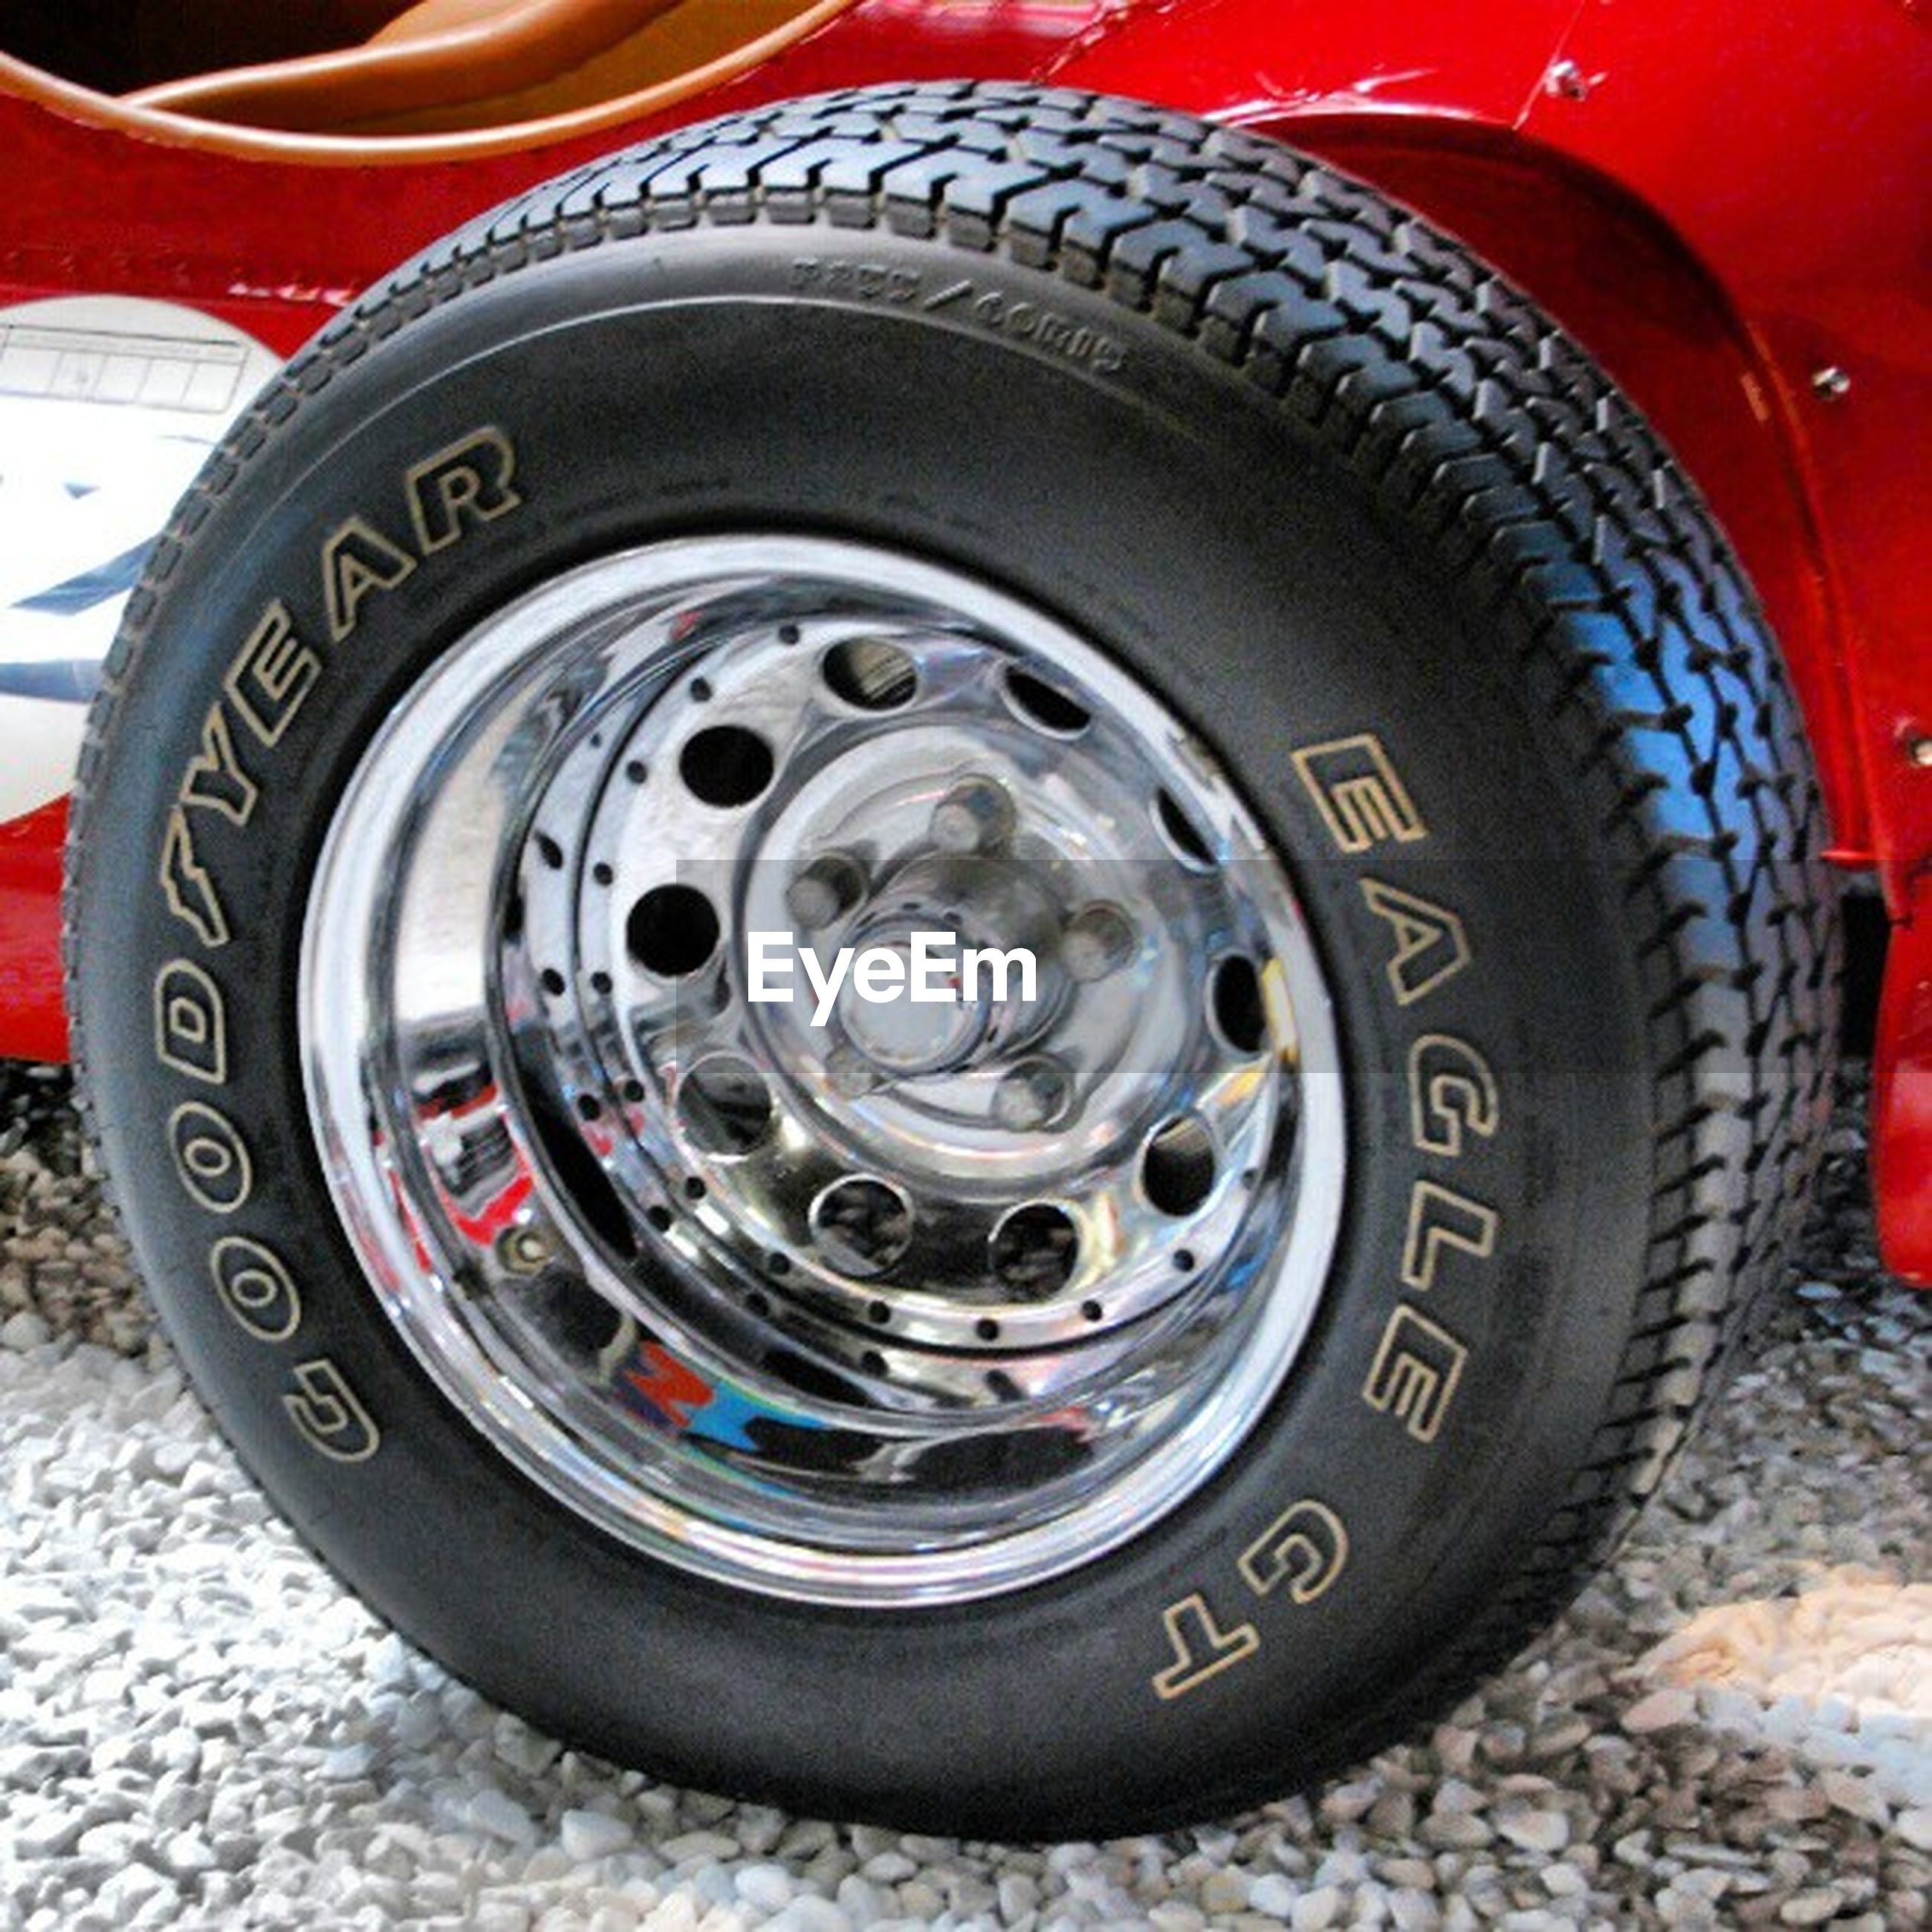 transportation, land vehicle, mode of transport, car, close-up, metal, old-fashioned, wheel, red, vehicle part, retro styled, tire, machine part, number, part of, circle, no people, old, vintage car, headlight